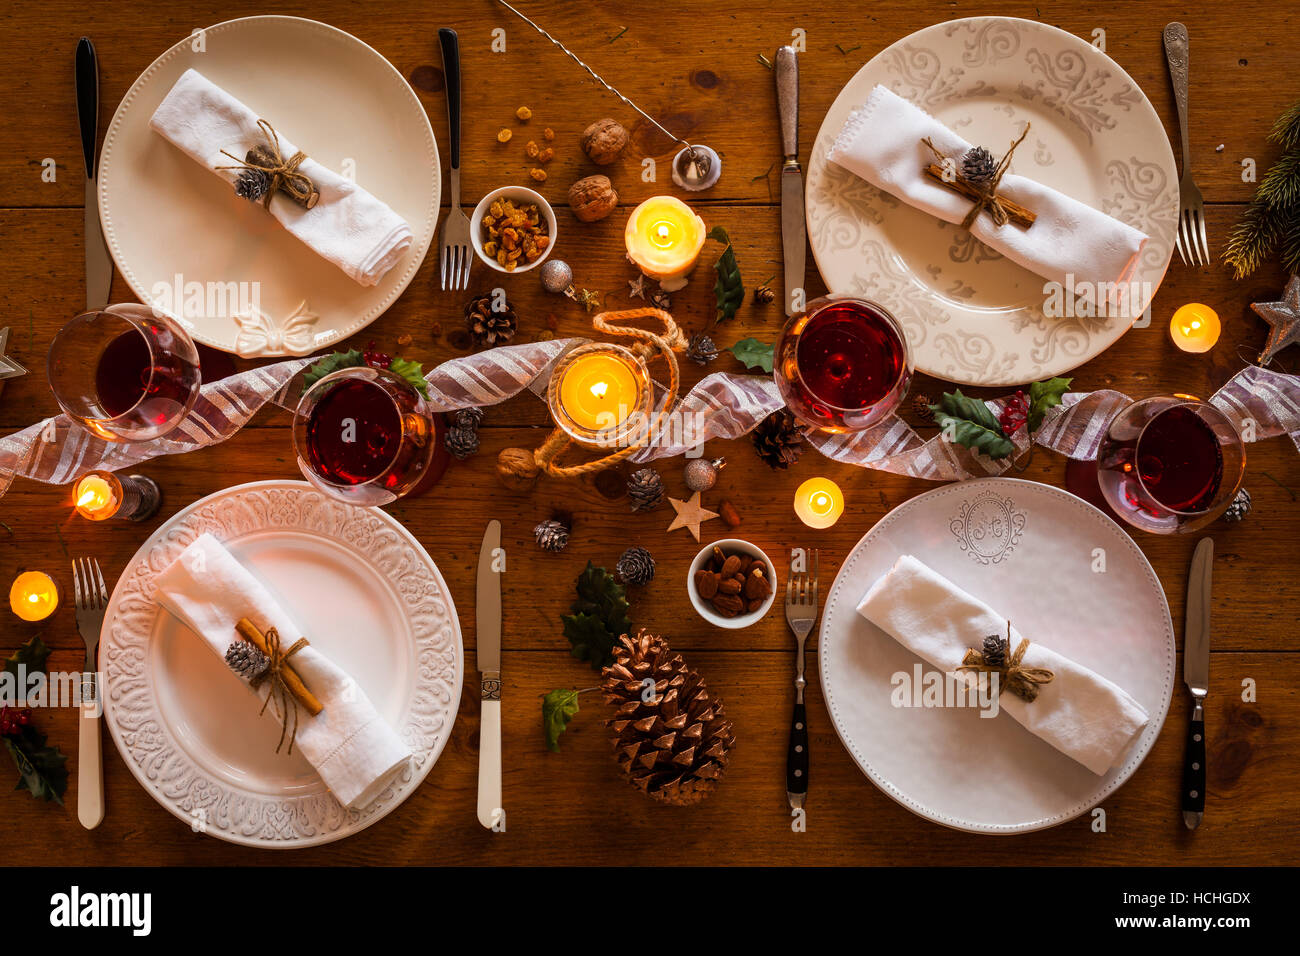 Christmas table setting for family dinner at a cosy rustic table with candles and decorations. Top view. & Christmas table setting for family dinner at a cosy rustic table ...